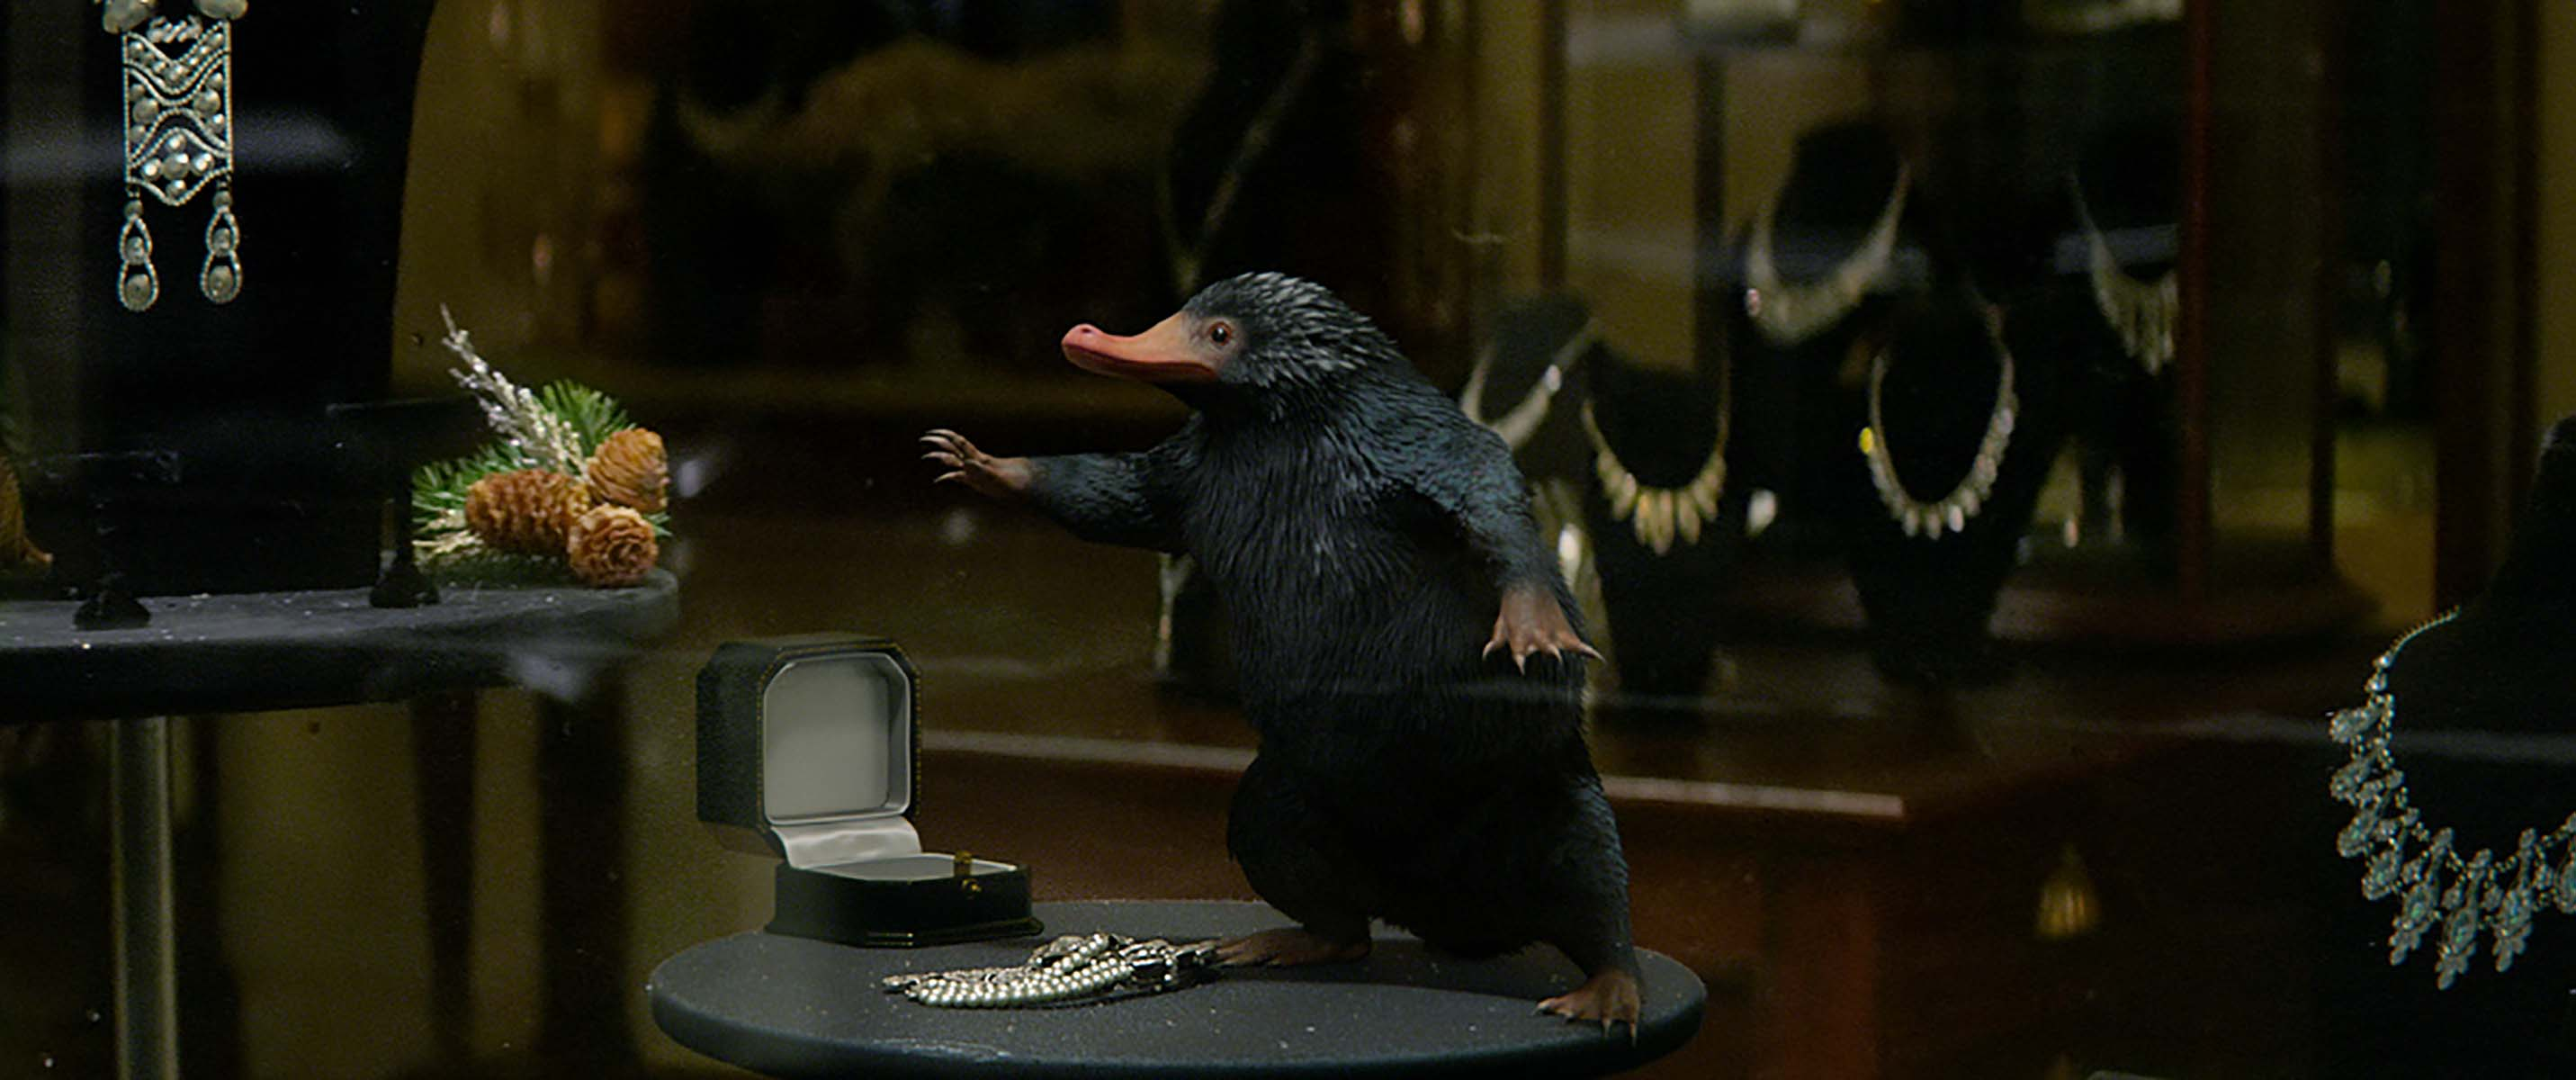 WB FB Niffler close up in jewellery store window